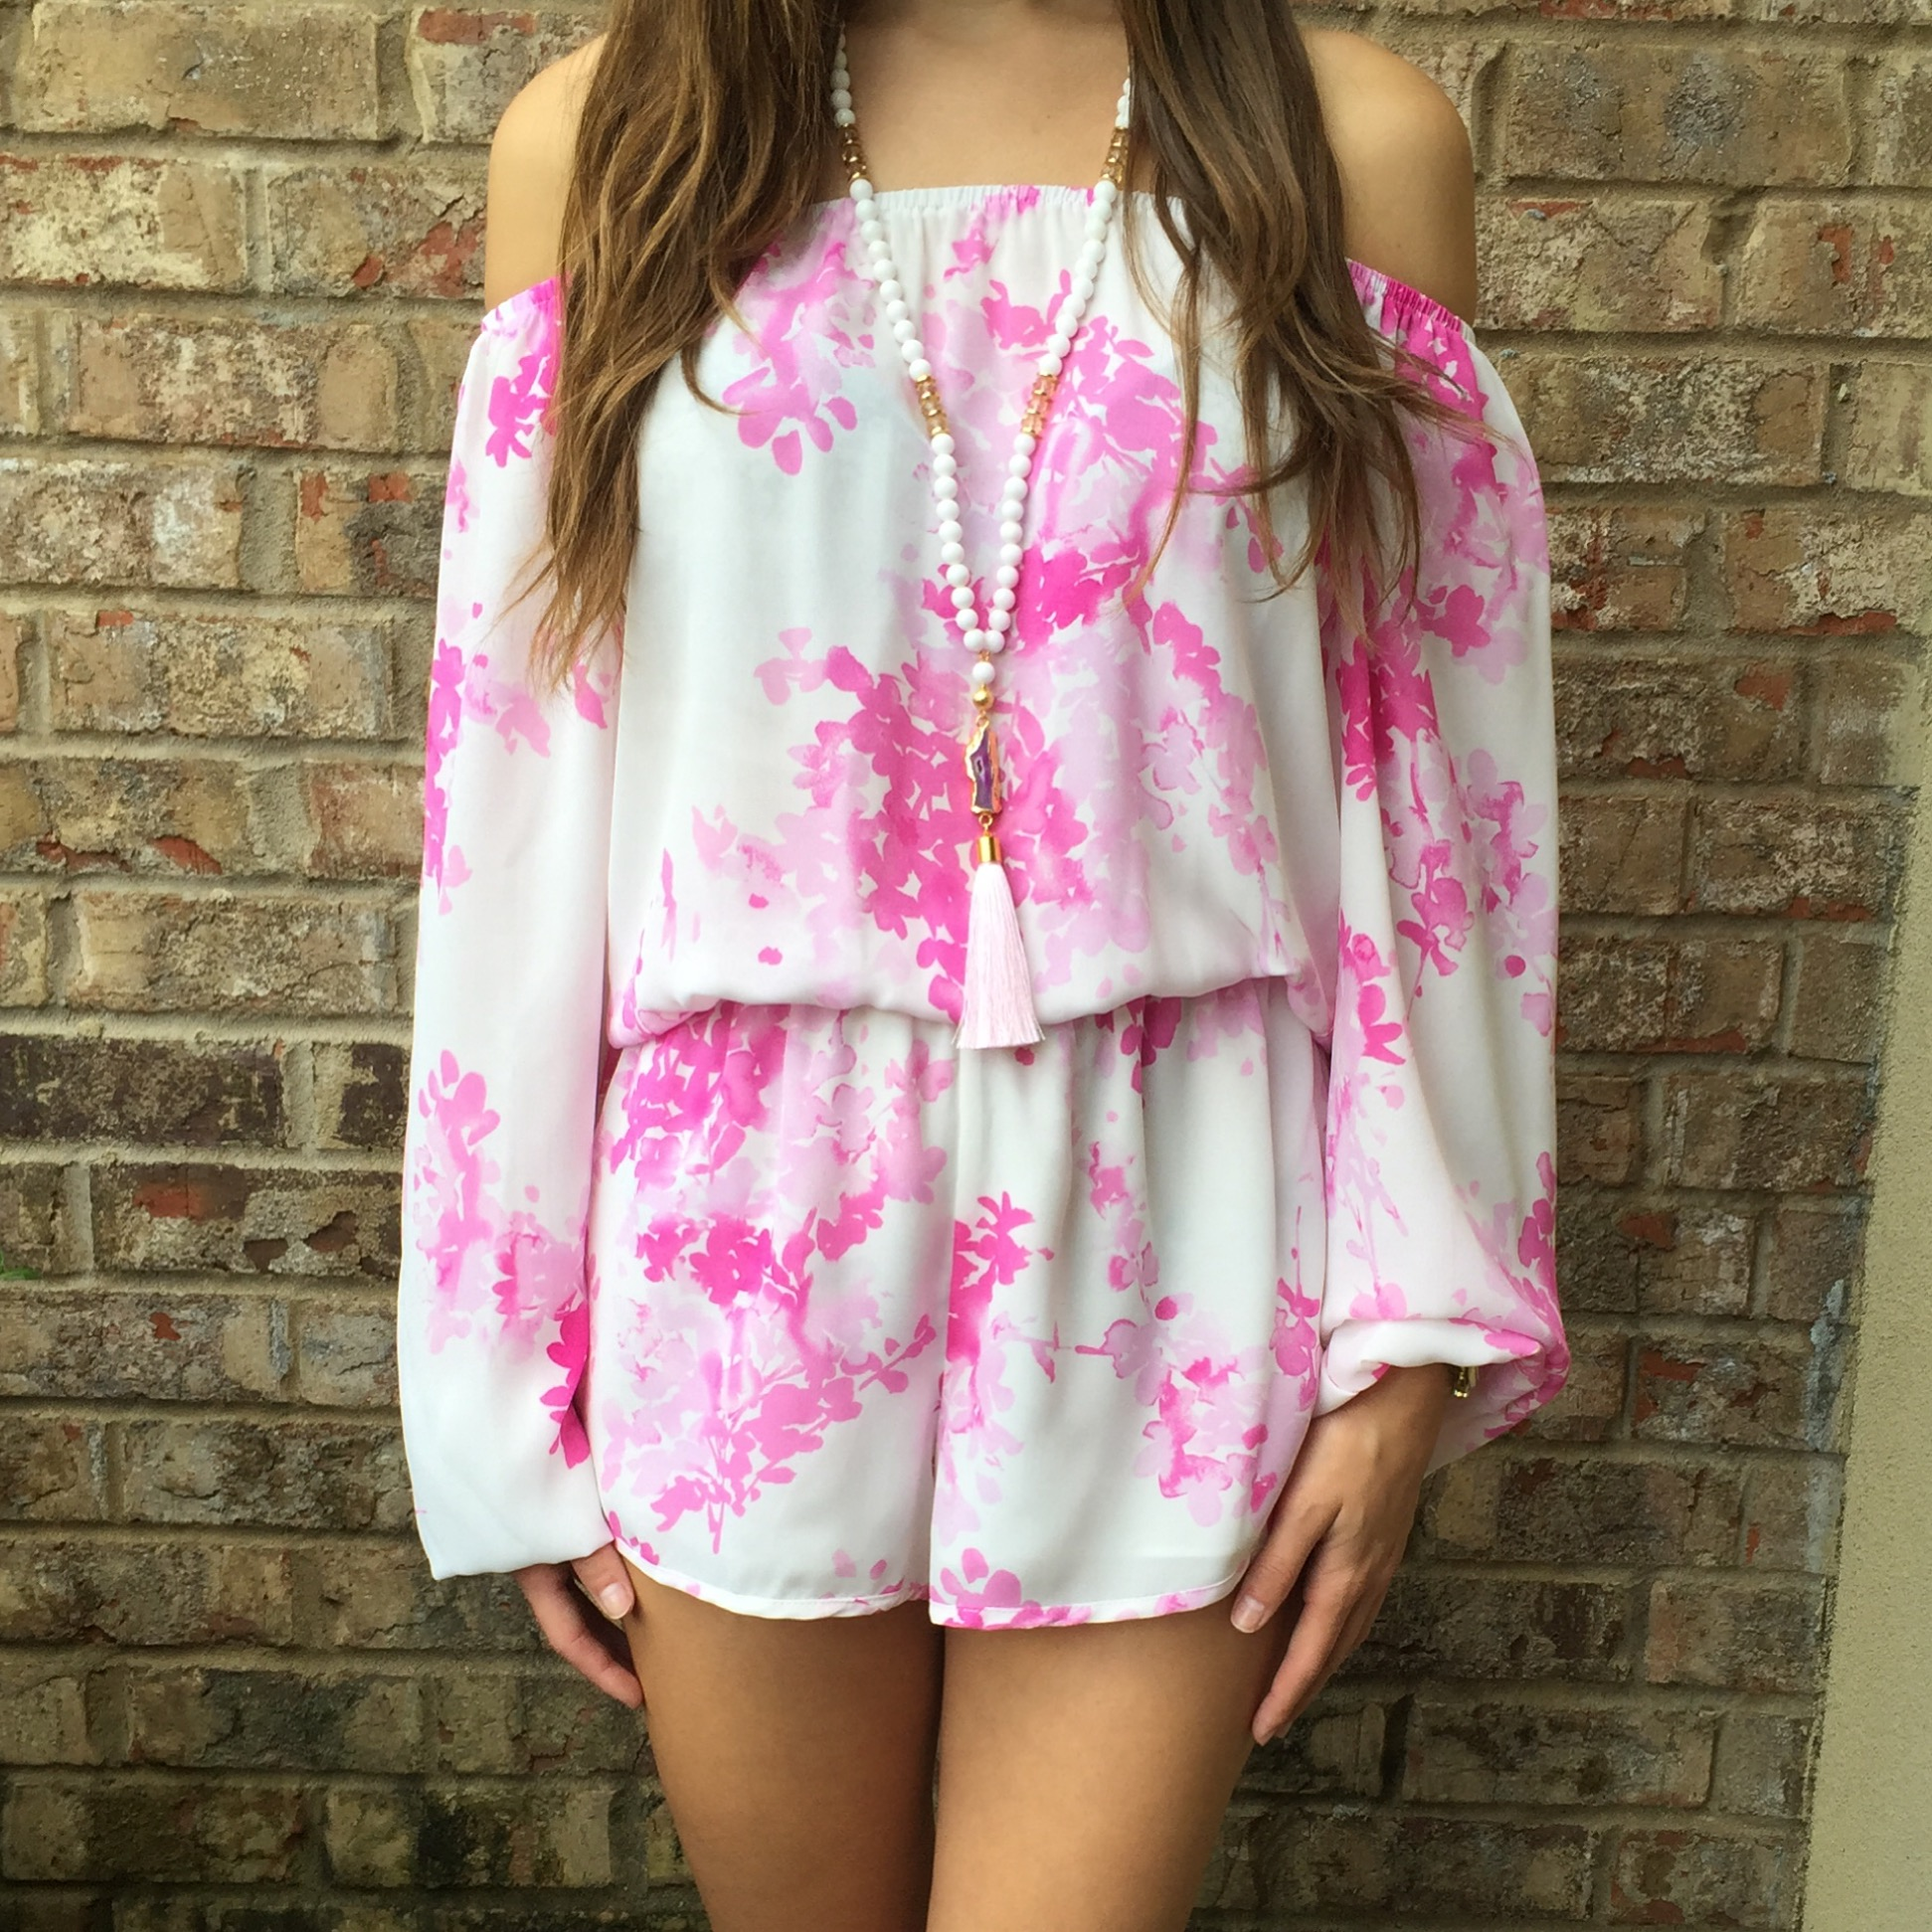 08c365d2526 White   Pink Floral Romper · Jaded Bliss Boutique · Online Store ...